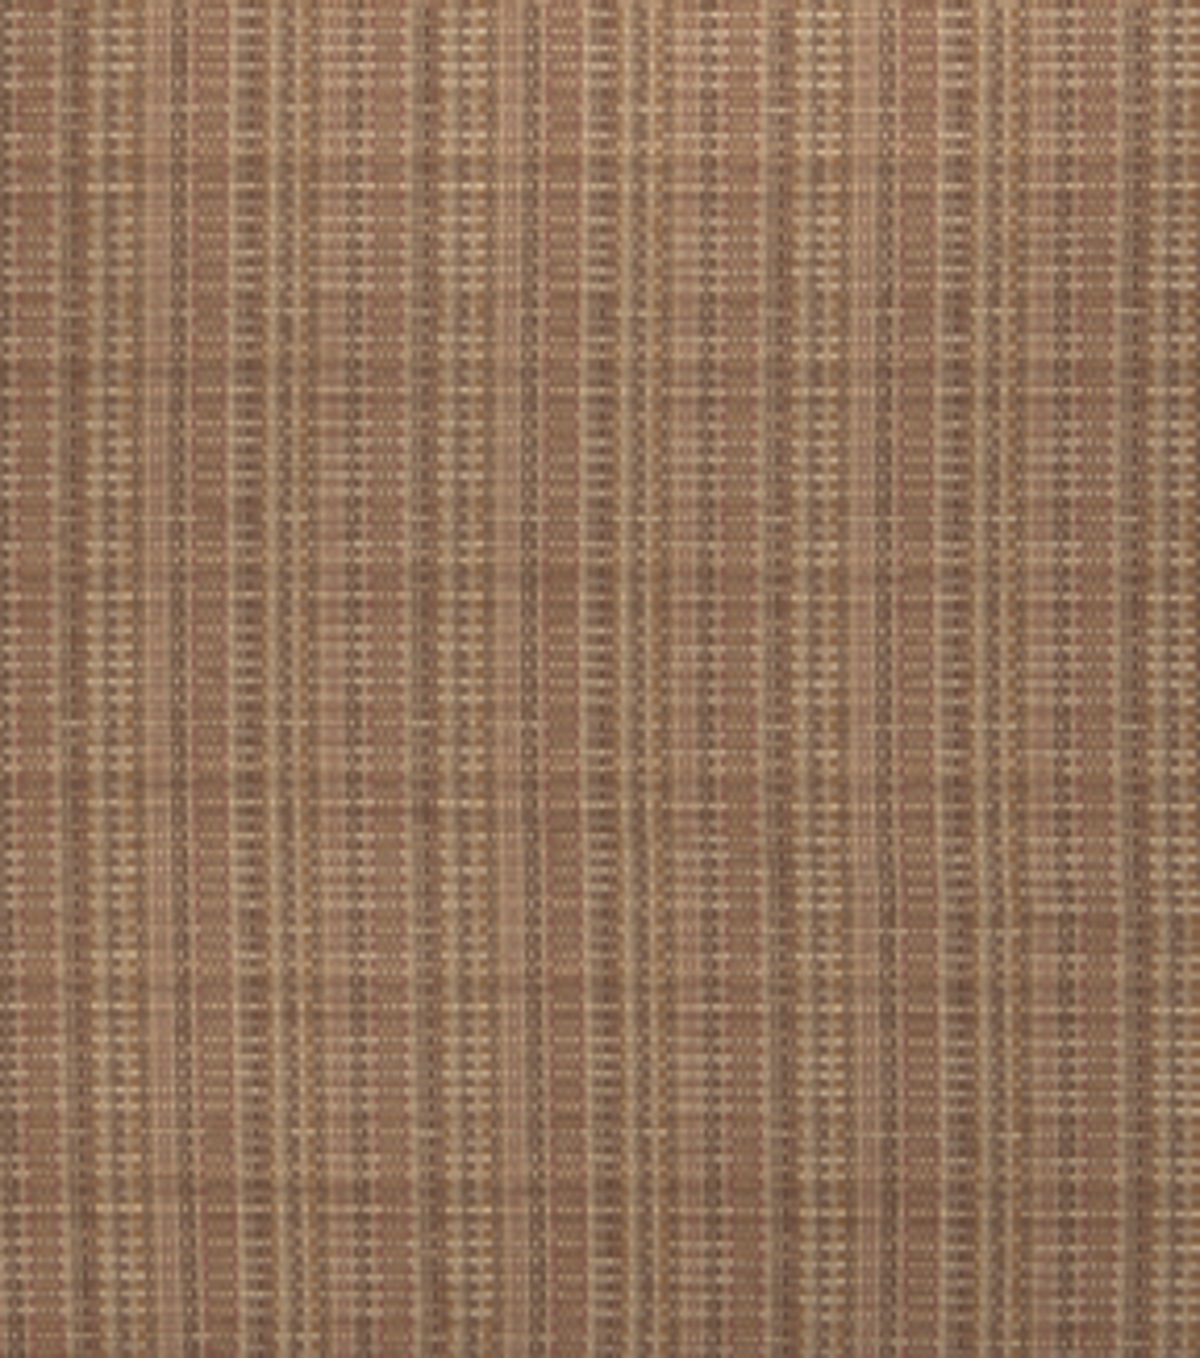 Home Decor 8\u0022x8\u0022 Fabric Swatch-Eaton Square Miracles Redwood